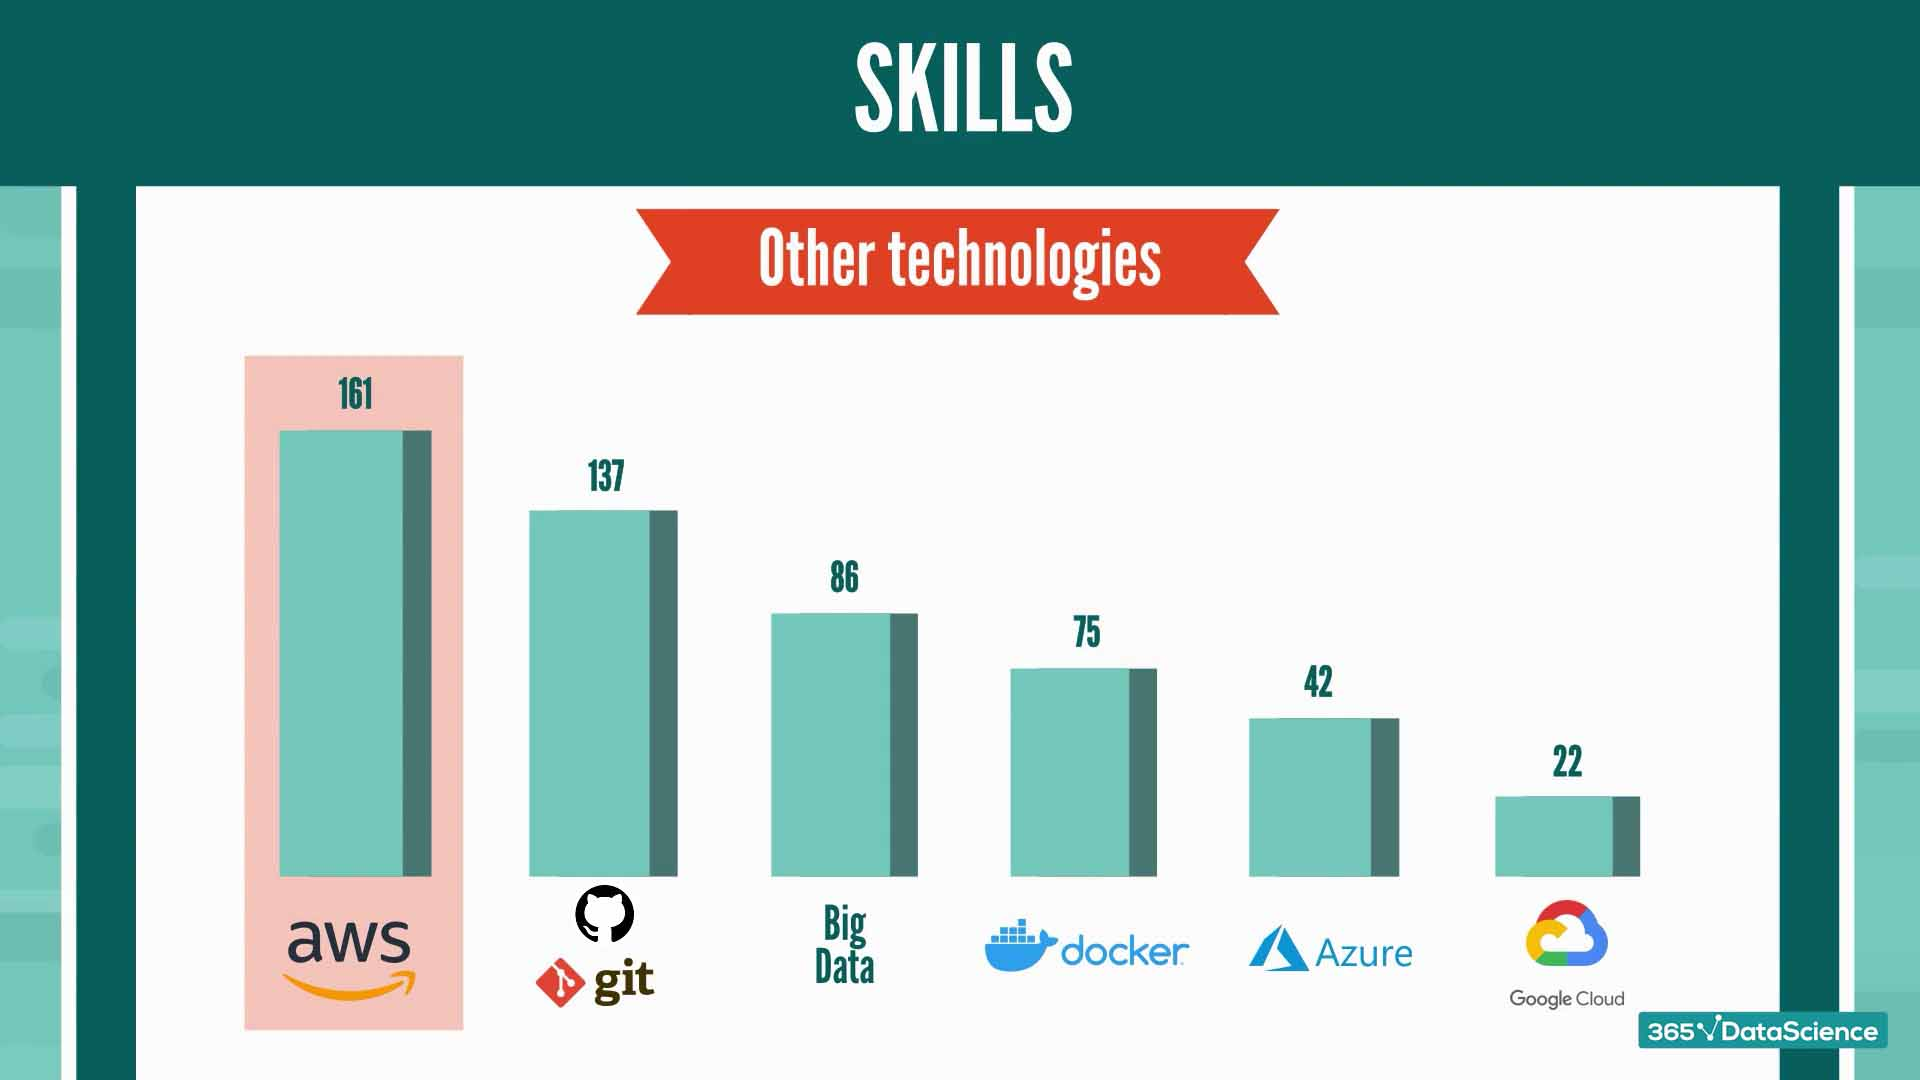 Most desired technologies for Python job roles